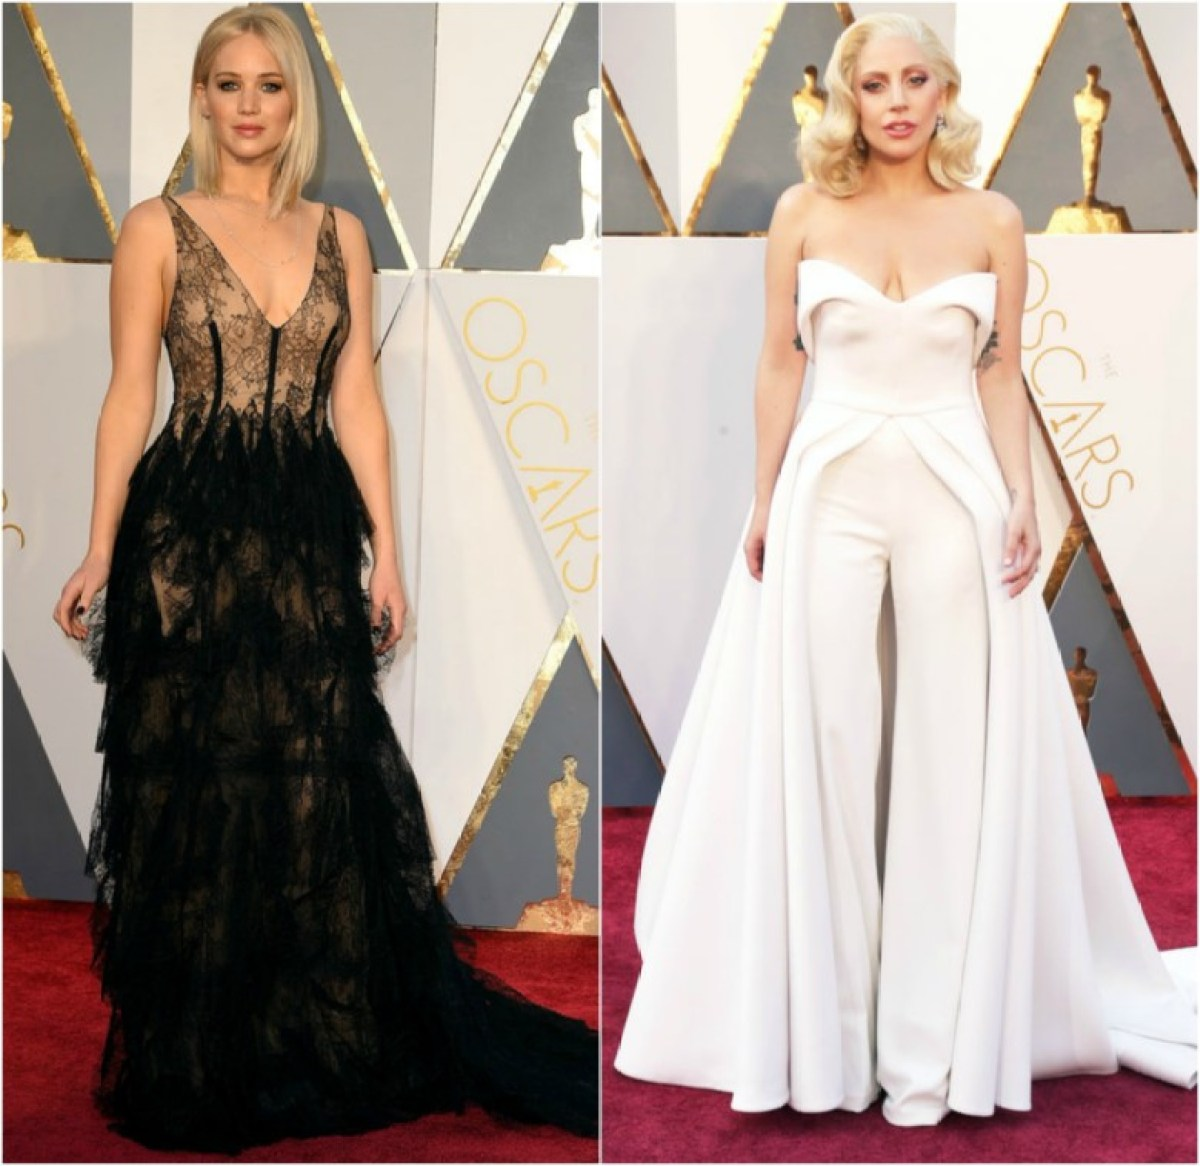 PicMonkey Collage lady gaga og jennifer lawrence